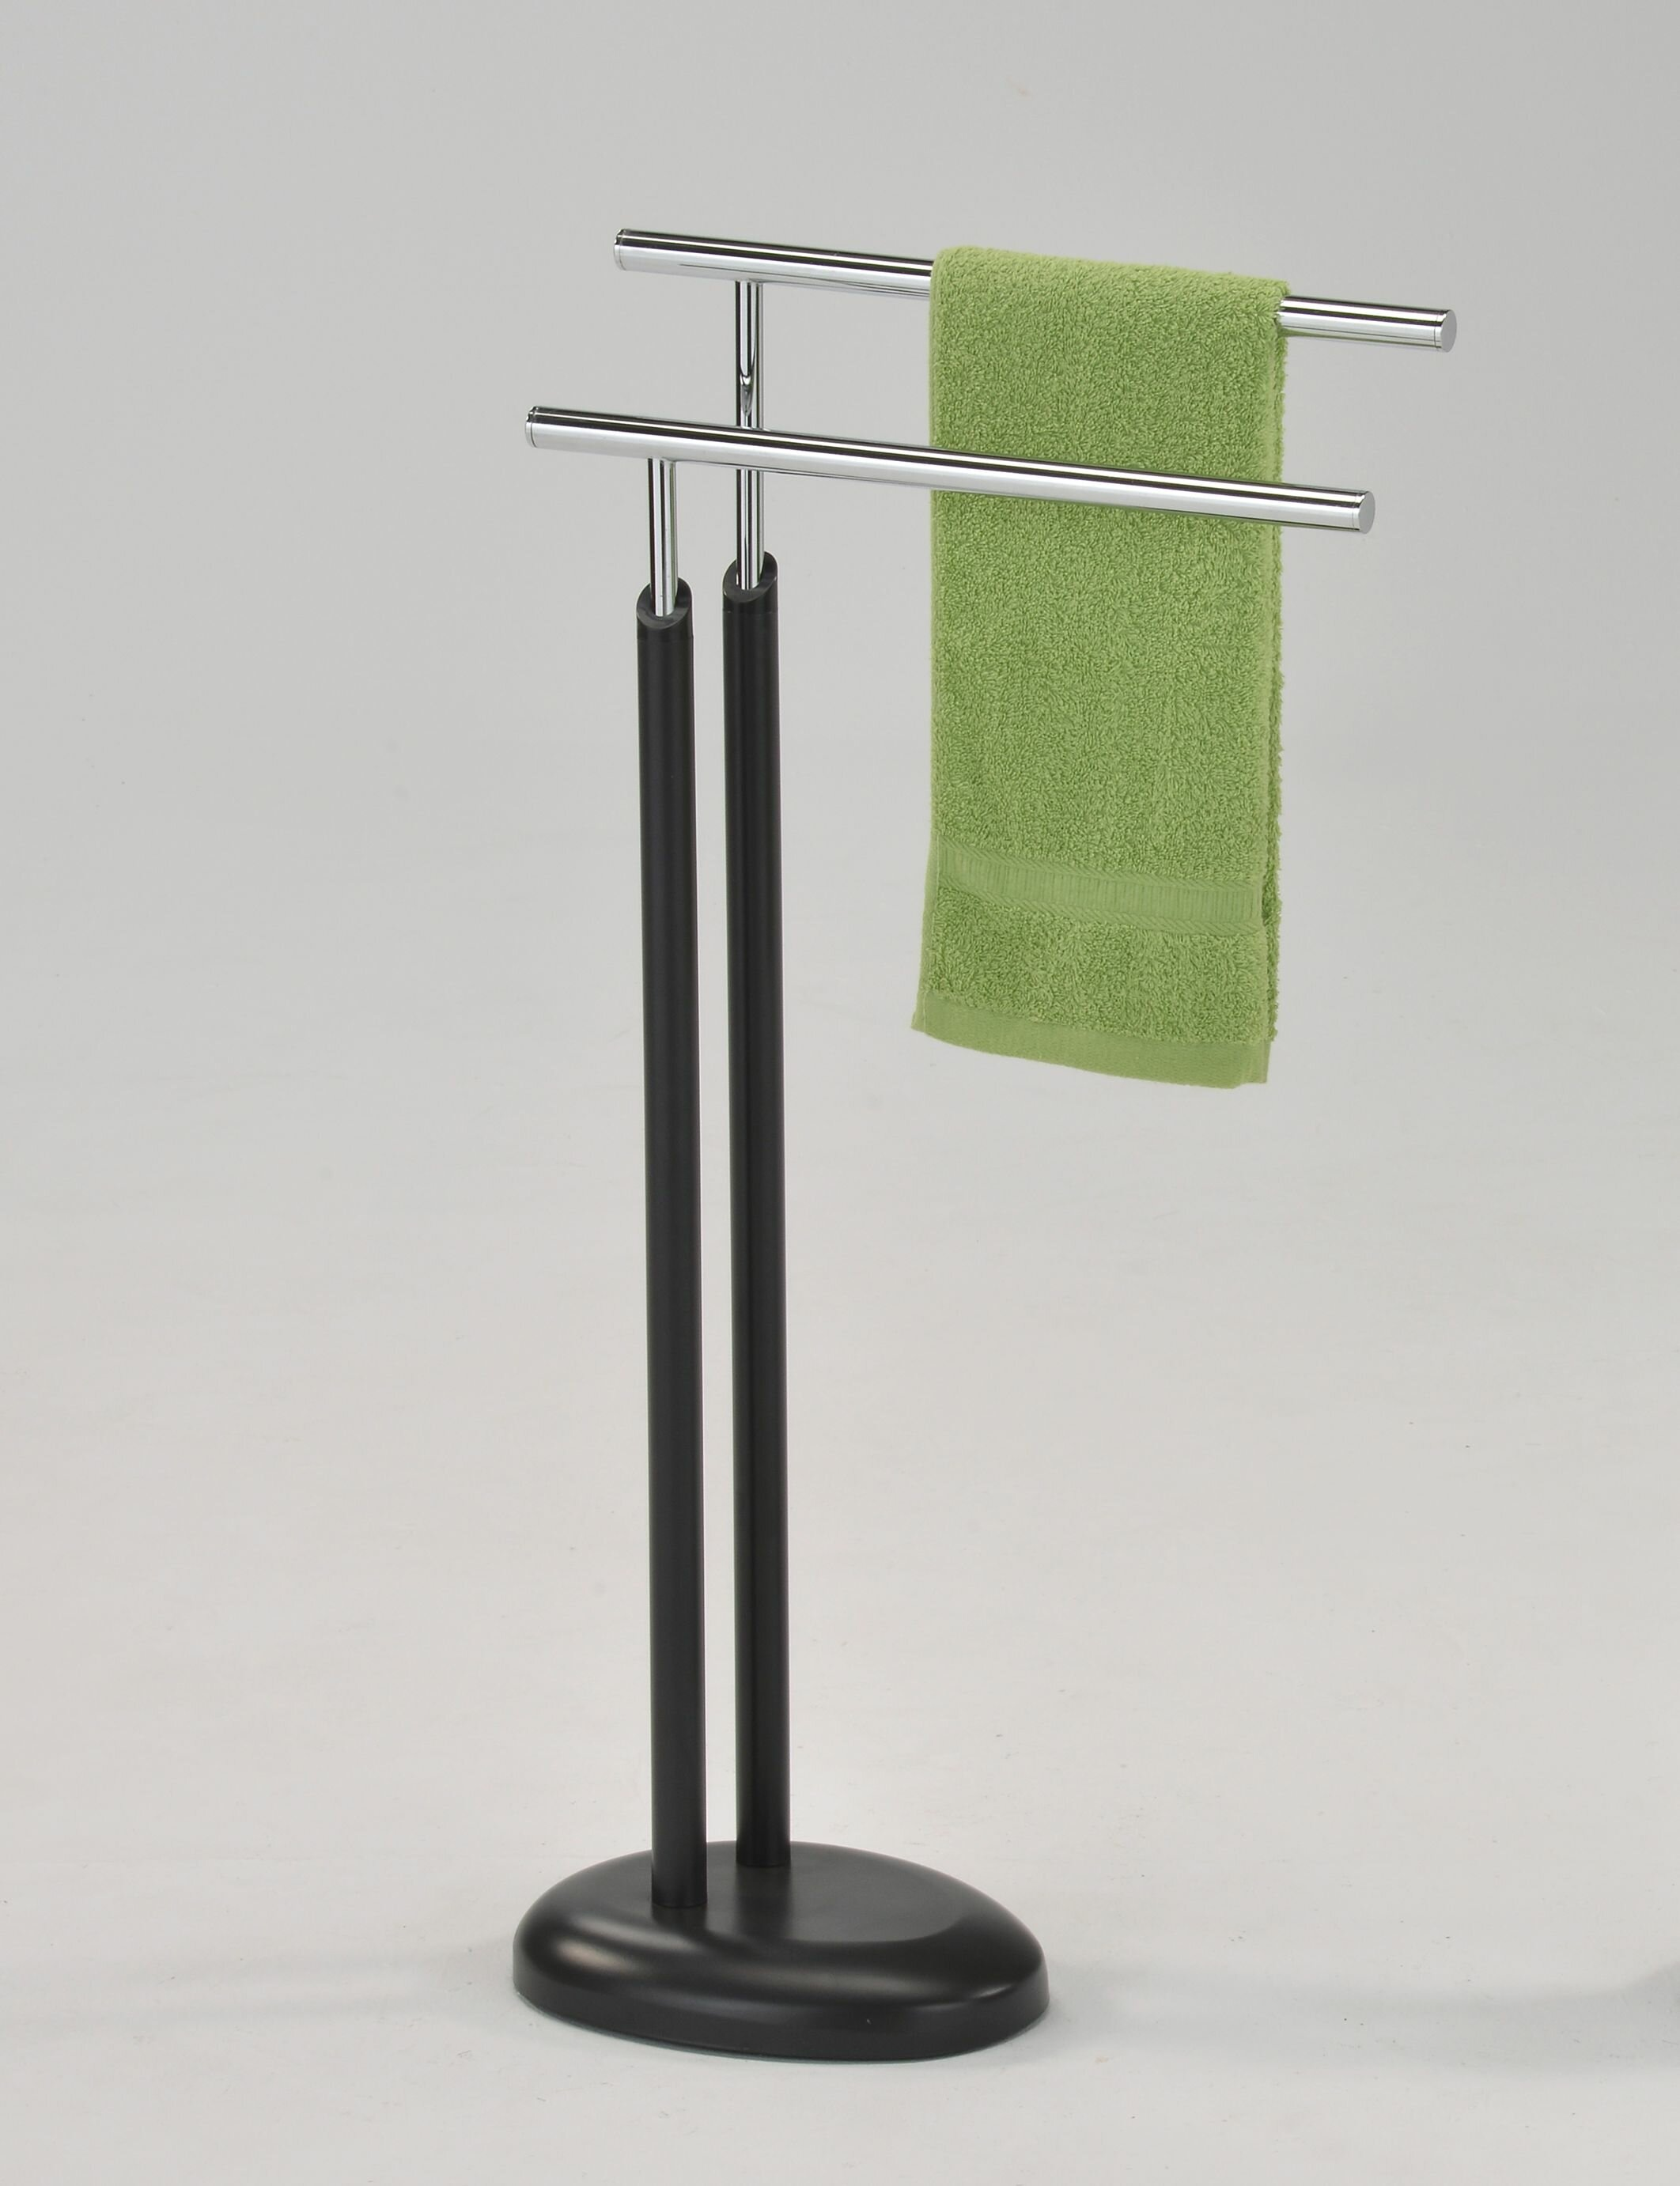 Ranpin Double Free Standing Towel Rack